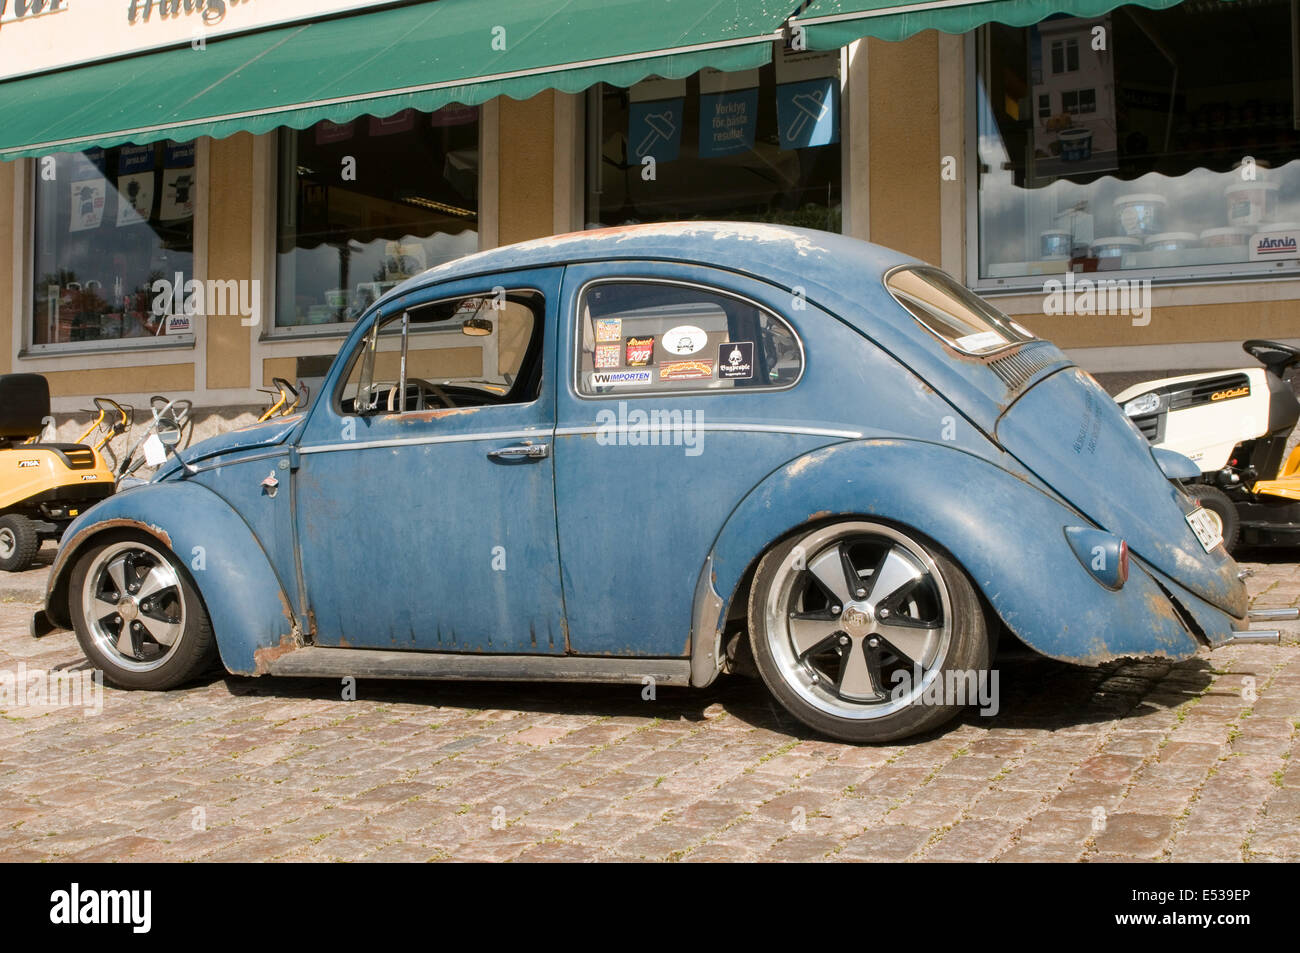 vw beetle cal look California looker style custom car cars customized derelict rat rod - Stock Image